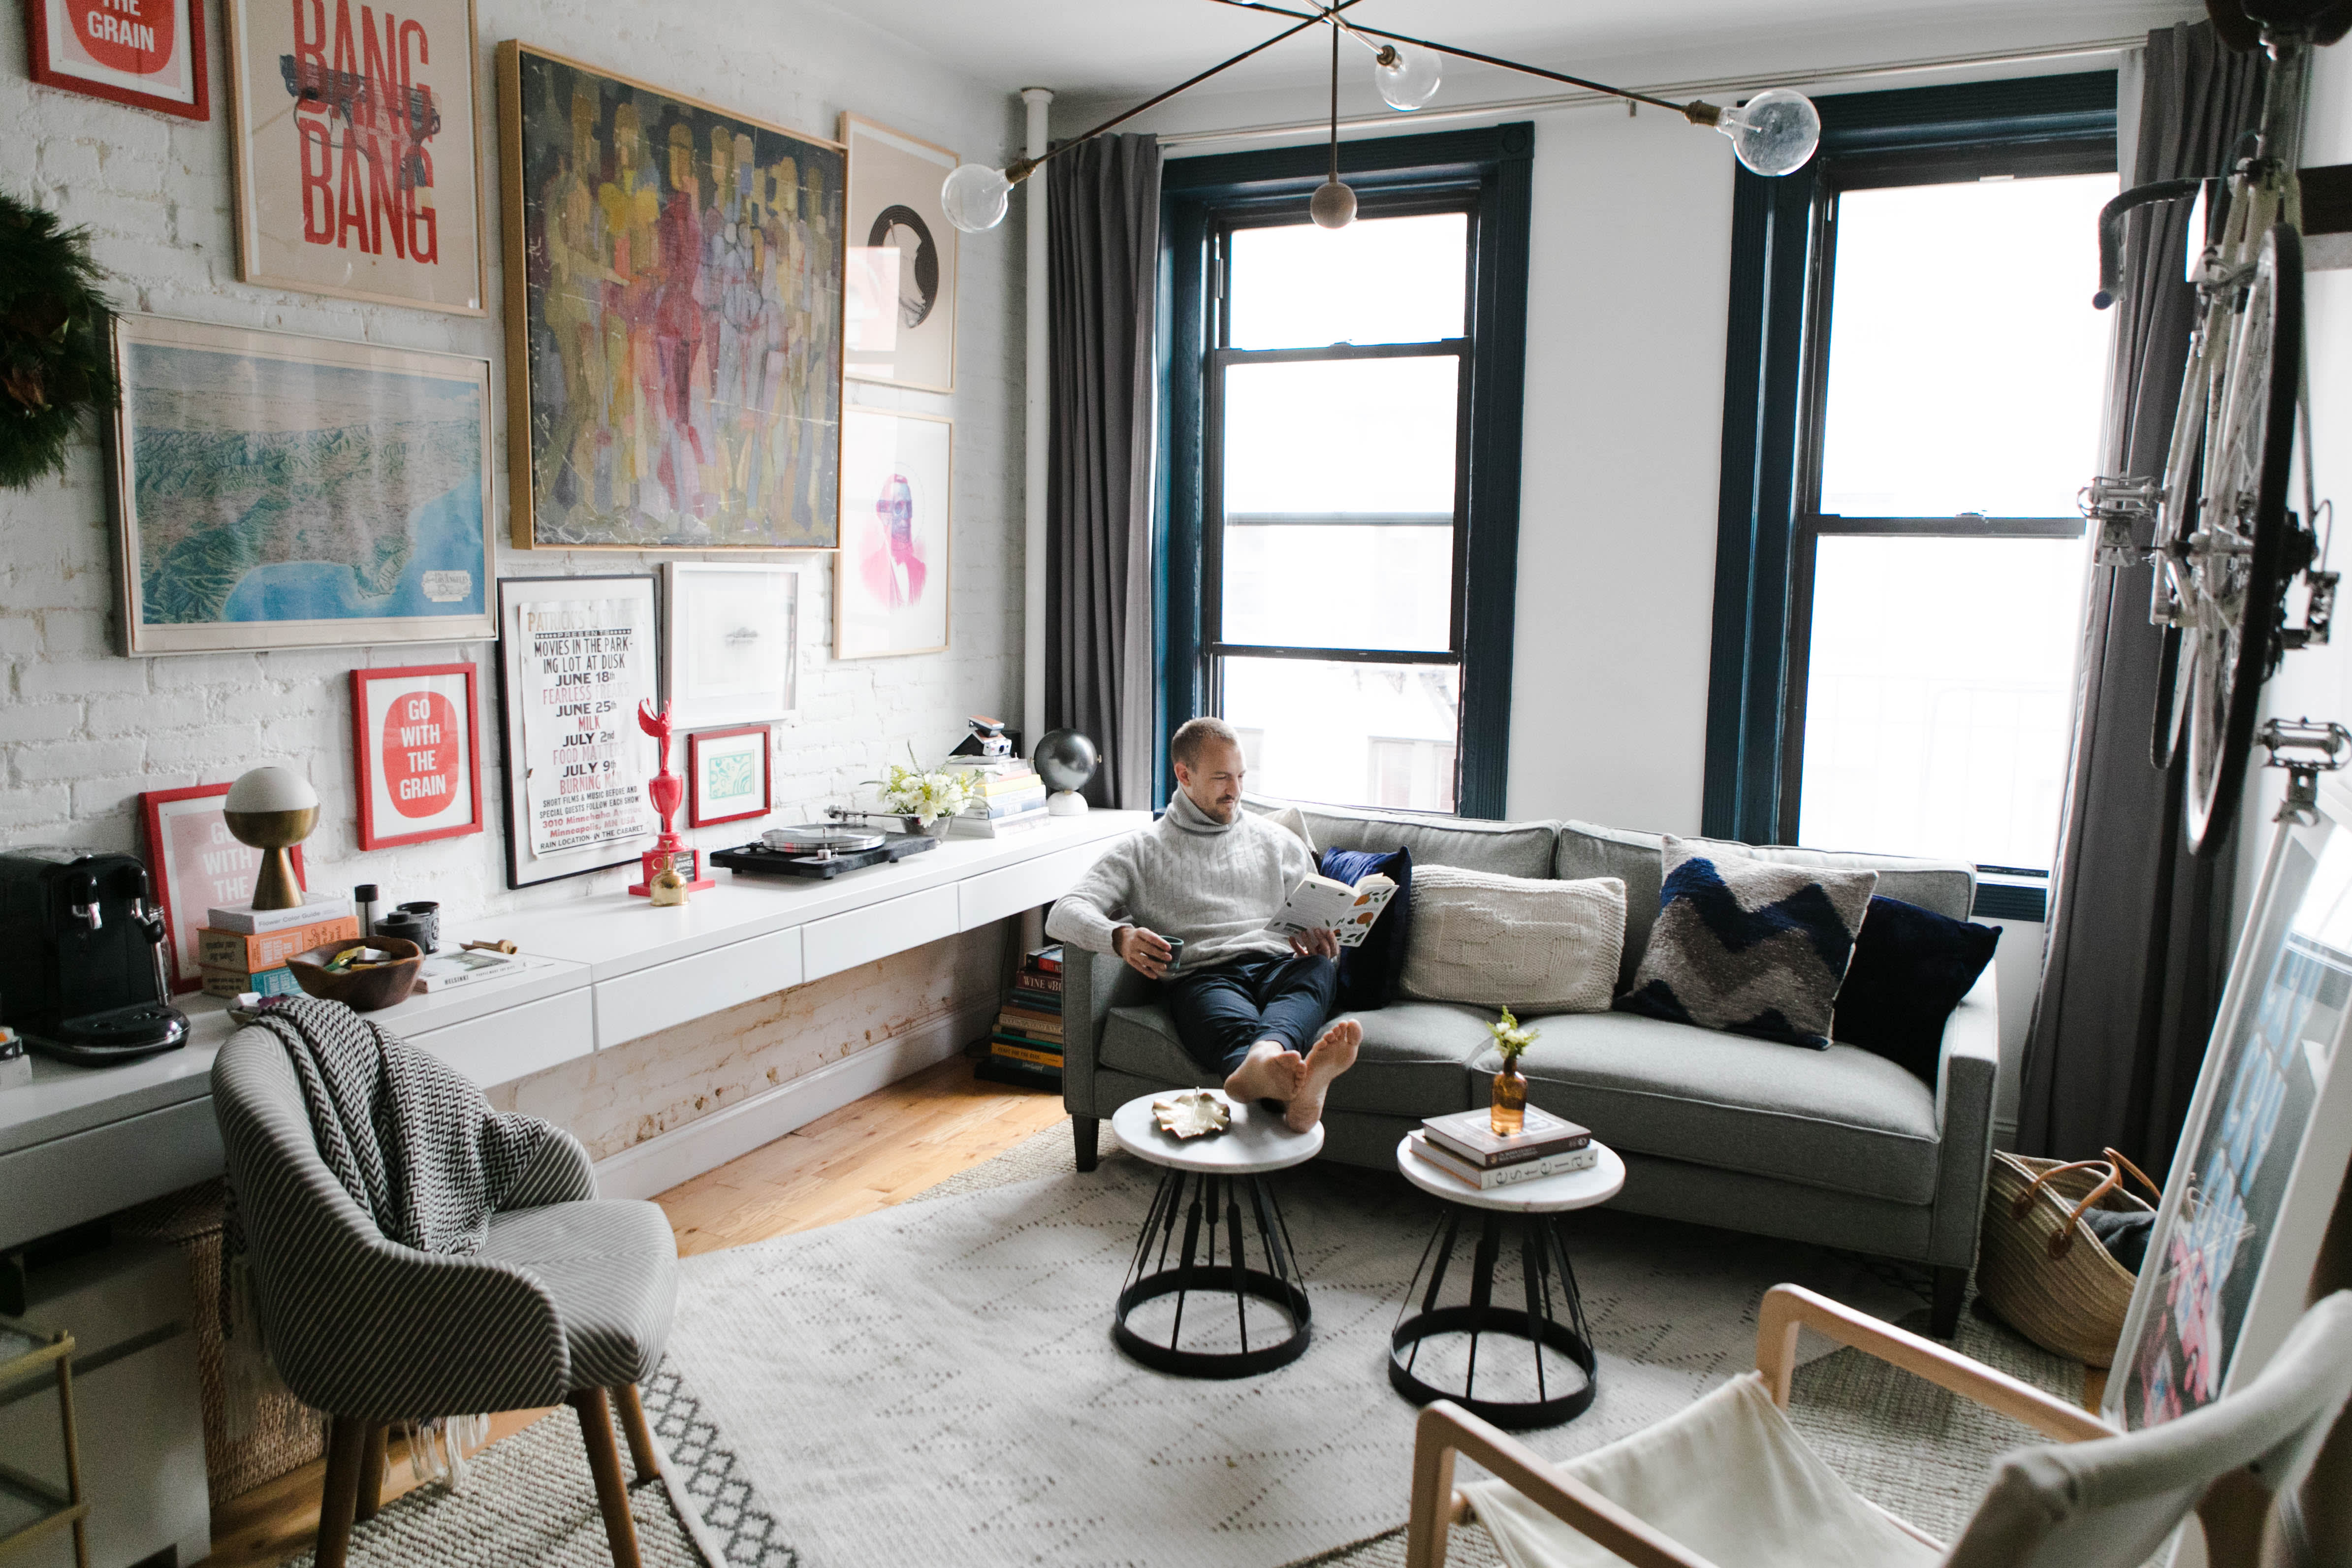 This Instagrammer's 500-Square-Foot Apartment Has All Kinds of Smart Small Space Ideas